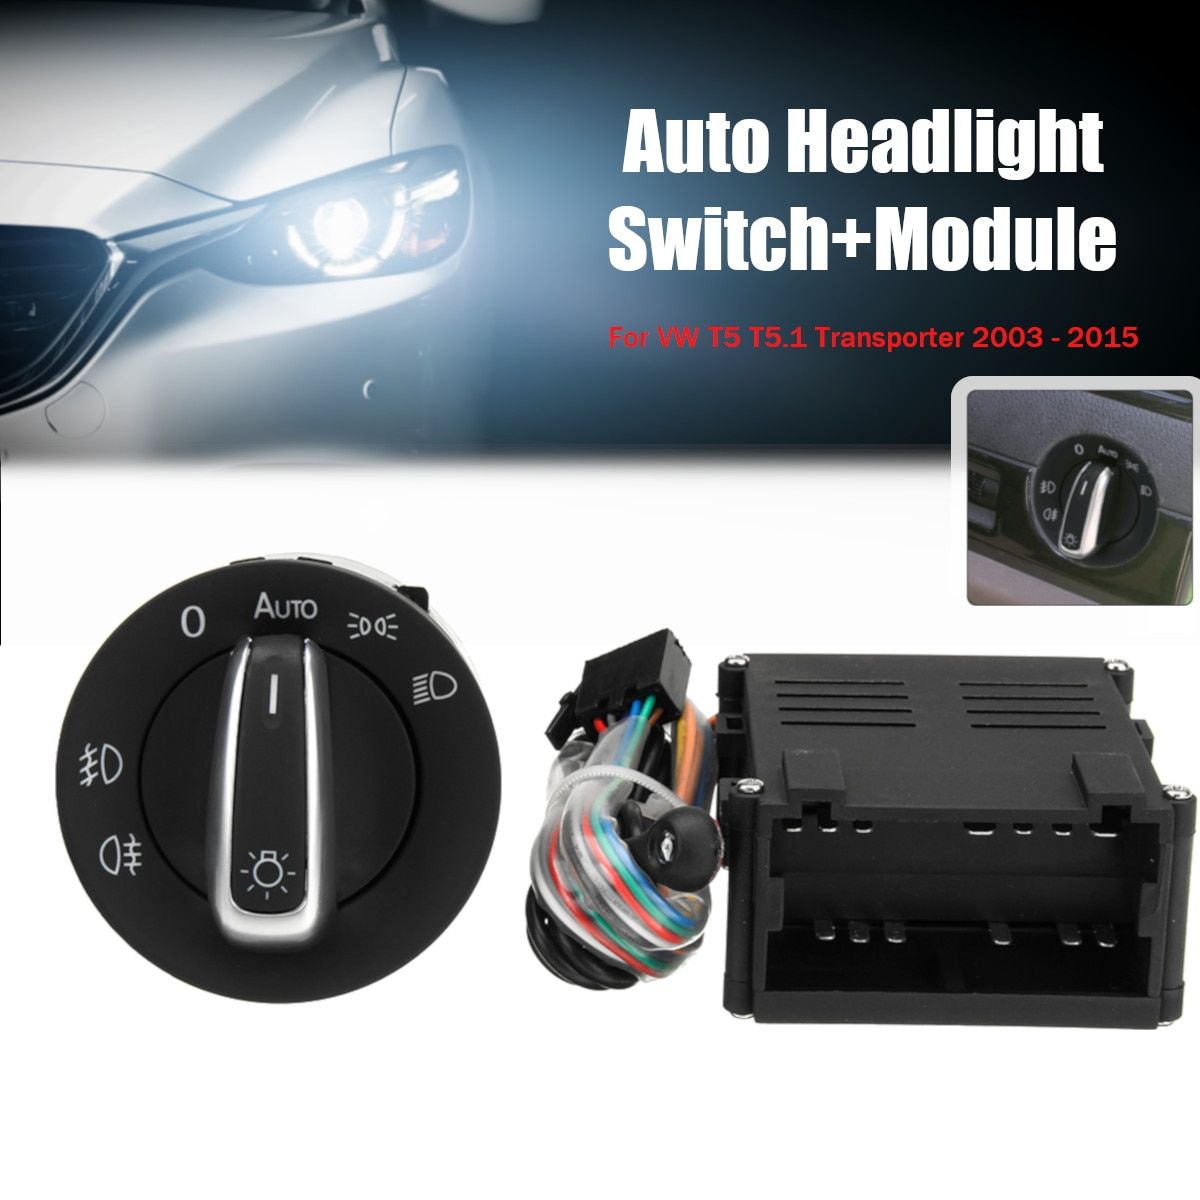 Car Auto Headlight Sensor HeadLamp Switch + Control Module for VW T5 T5.1 Transporter 2003-2015